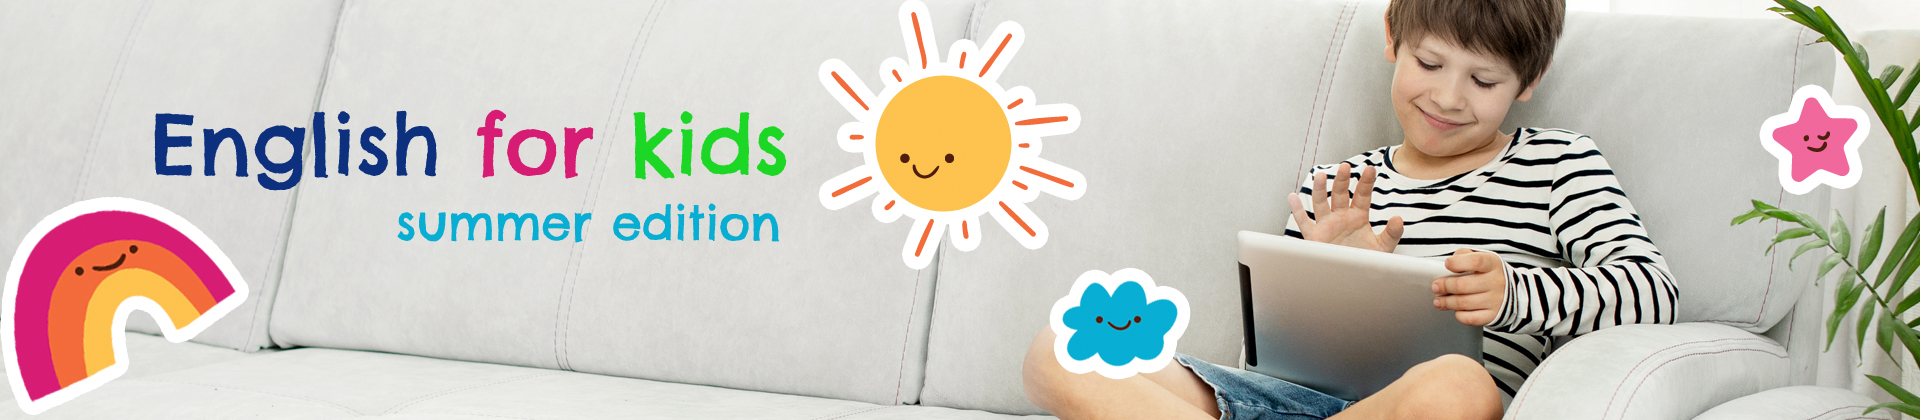 english for kids summer edition